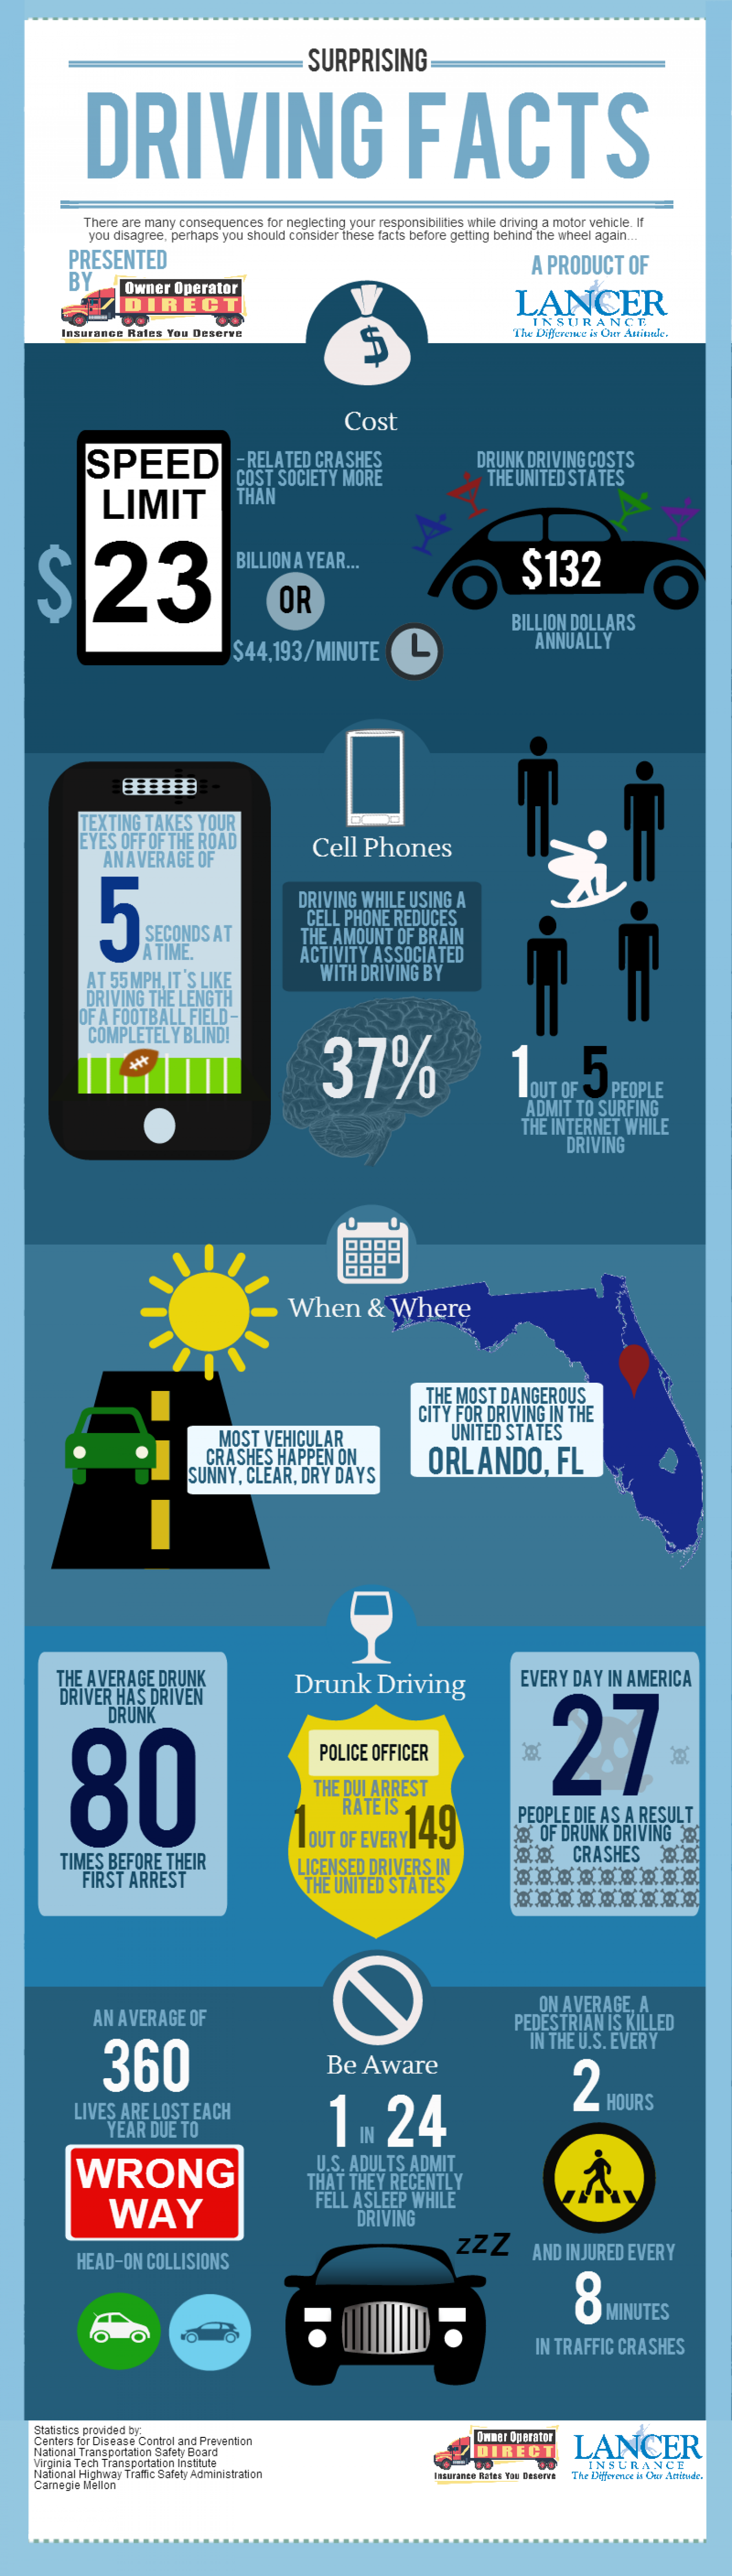 Surprising Driving Facts Infographic